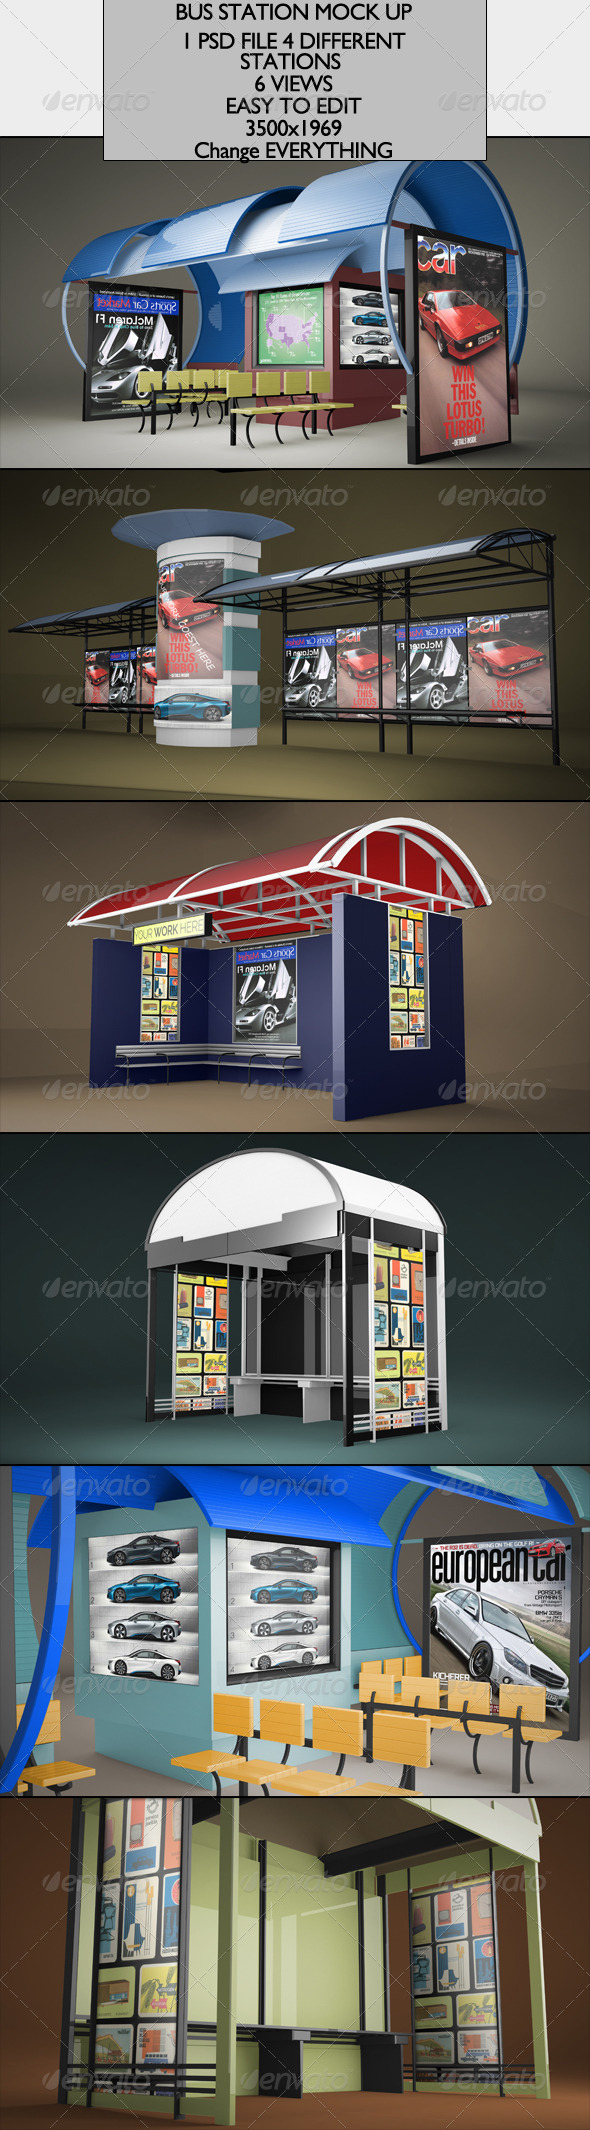 Bus Station Mock-up - Miscellaneous Product Mock-Ups